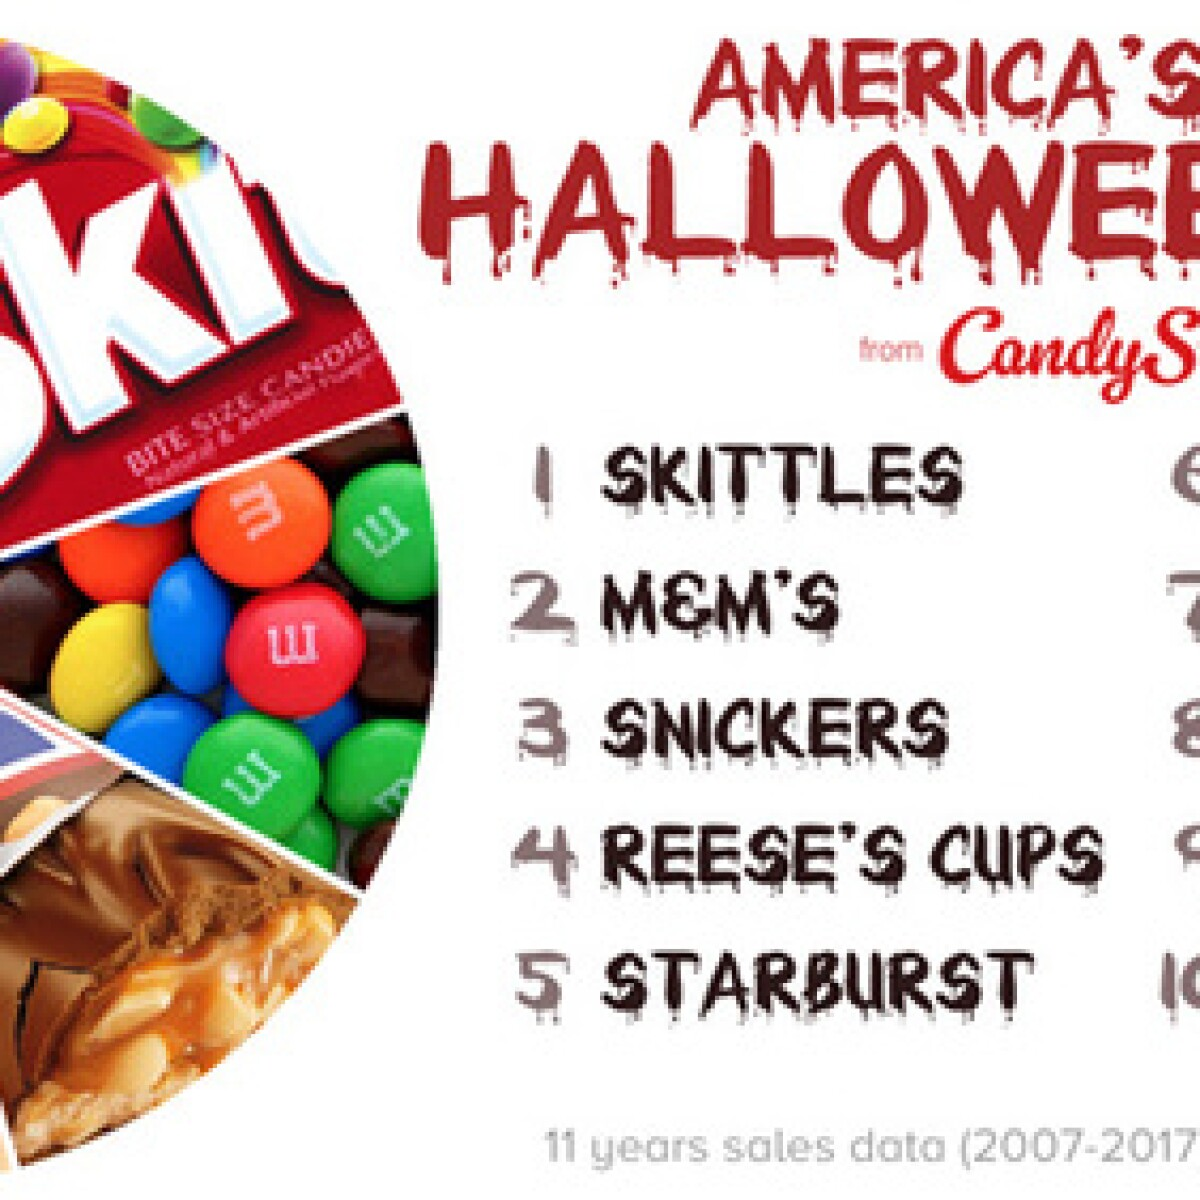 snickers is arizona's favorite halloween candy